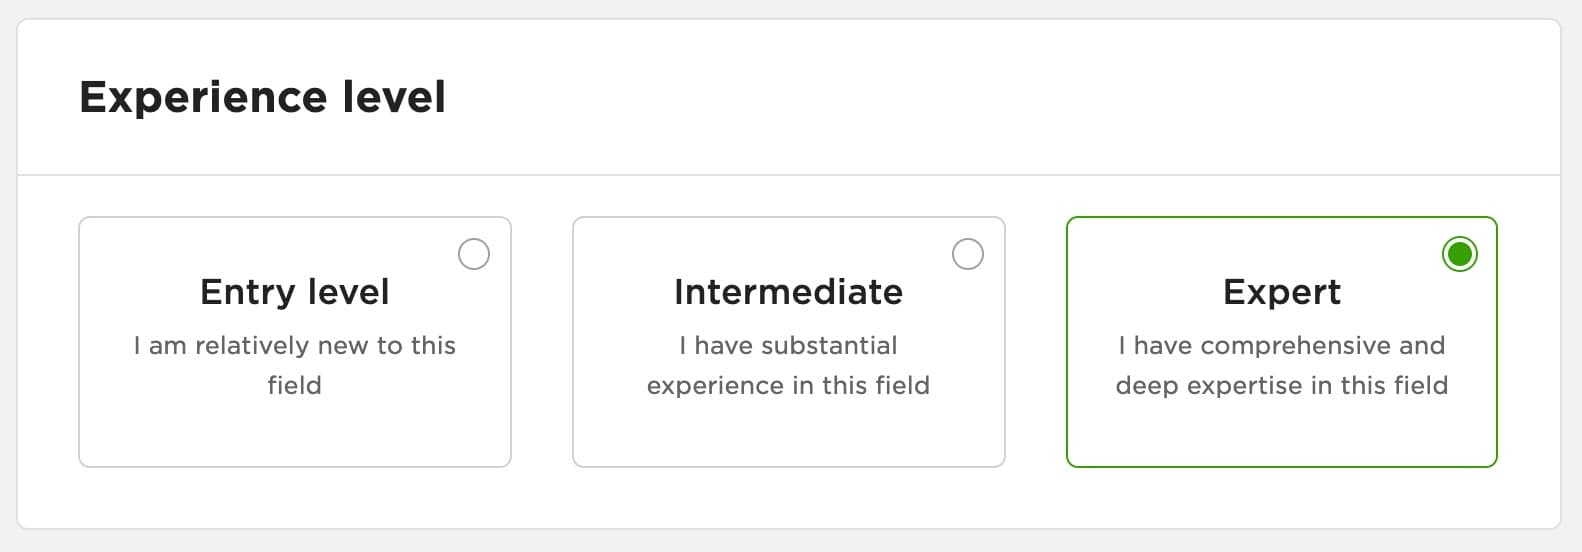 Experience level options when signing up for Upwork.